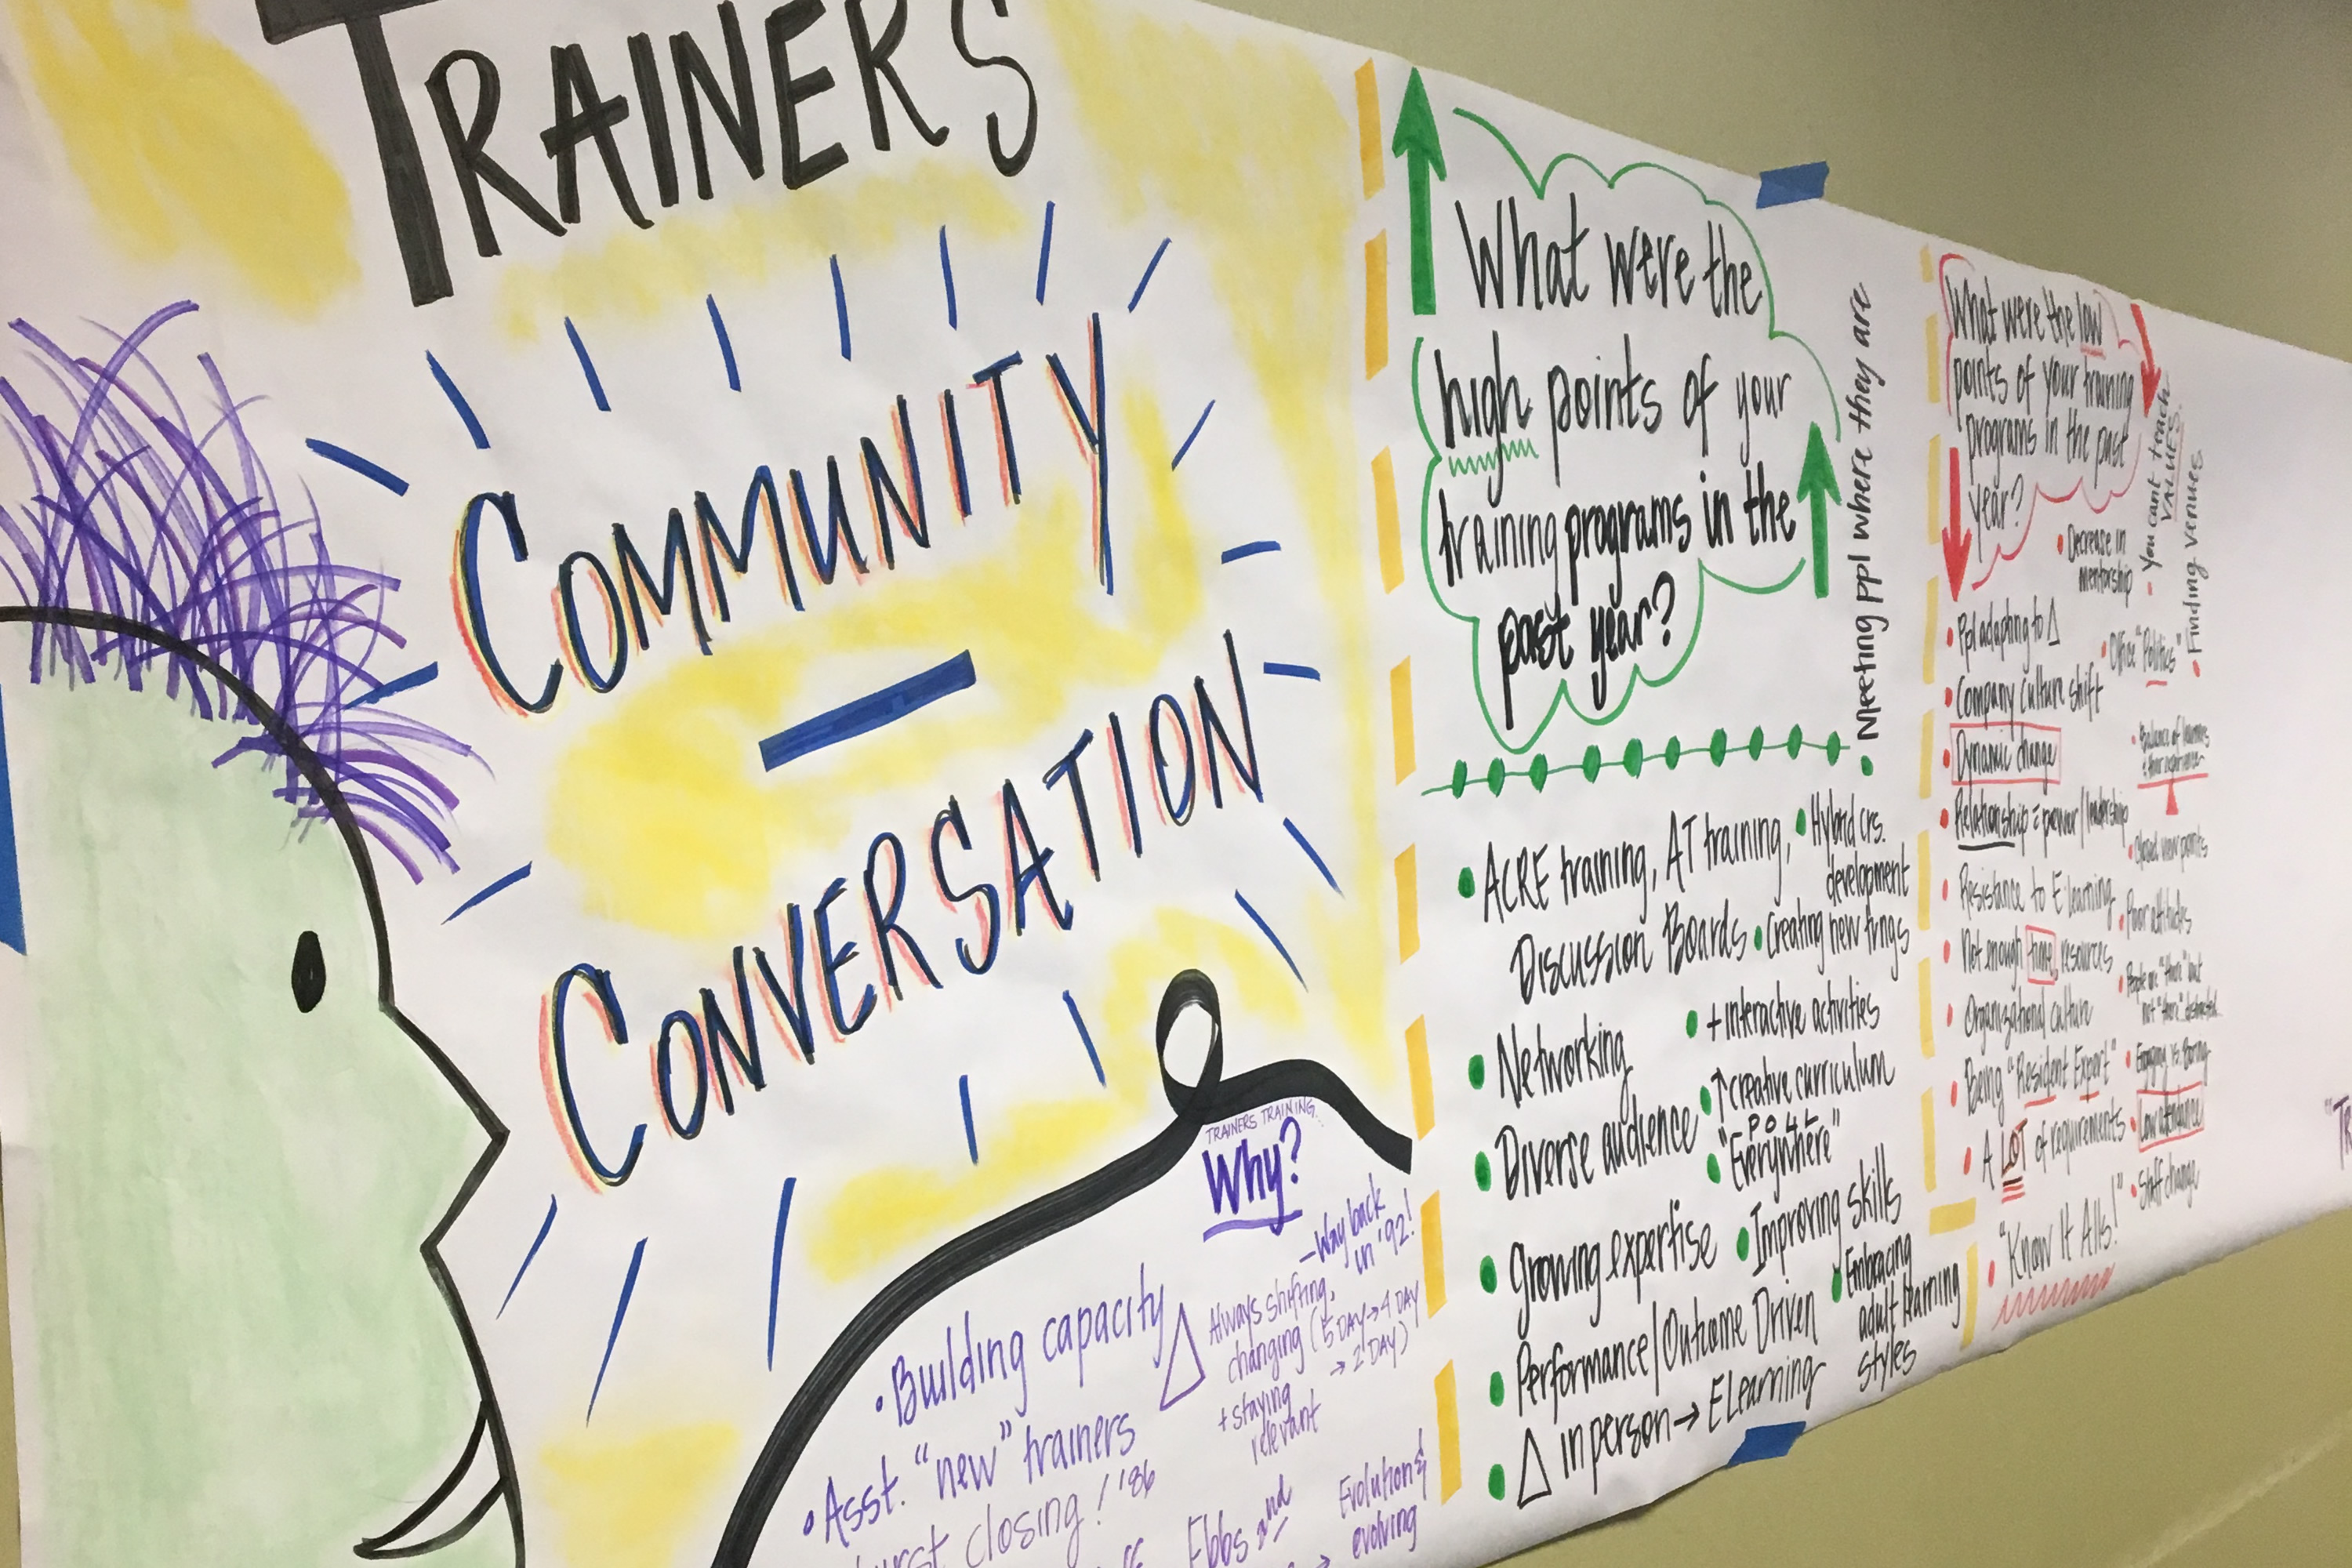 Graphic Facilitation of the Trainers' Community Conversation